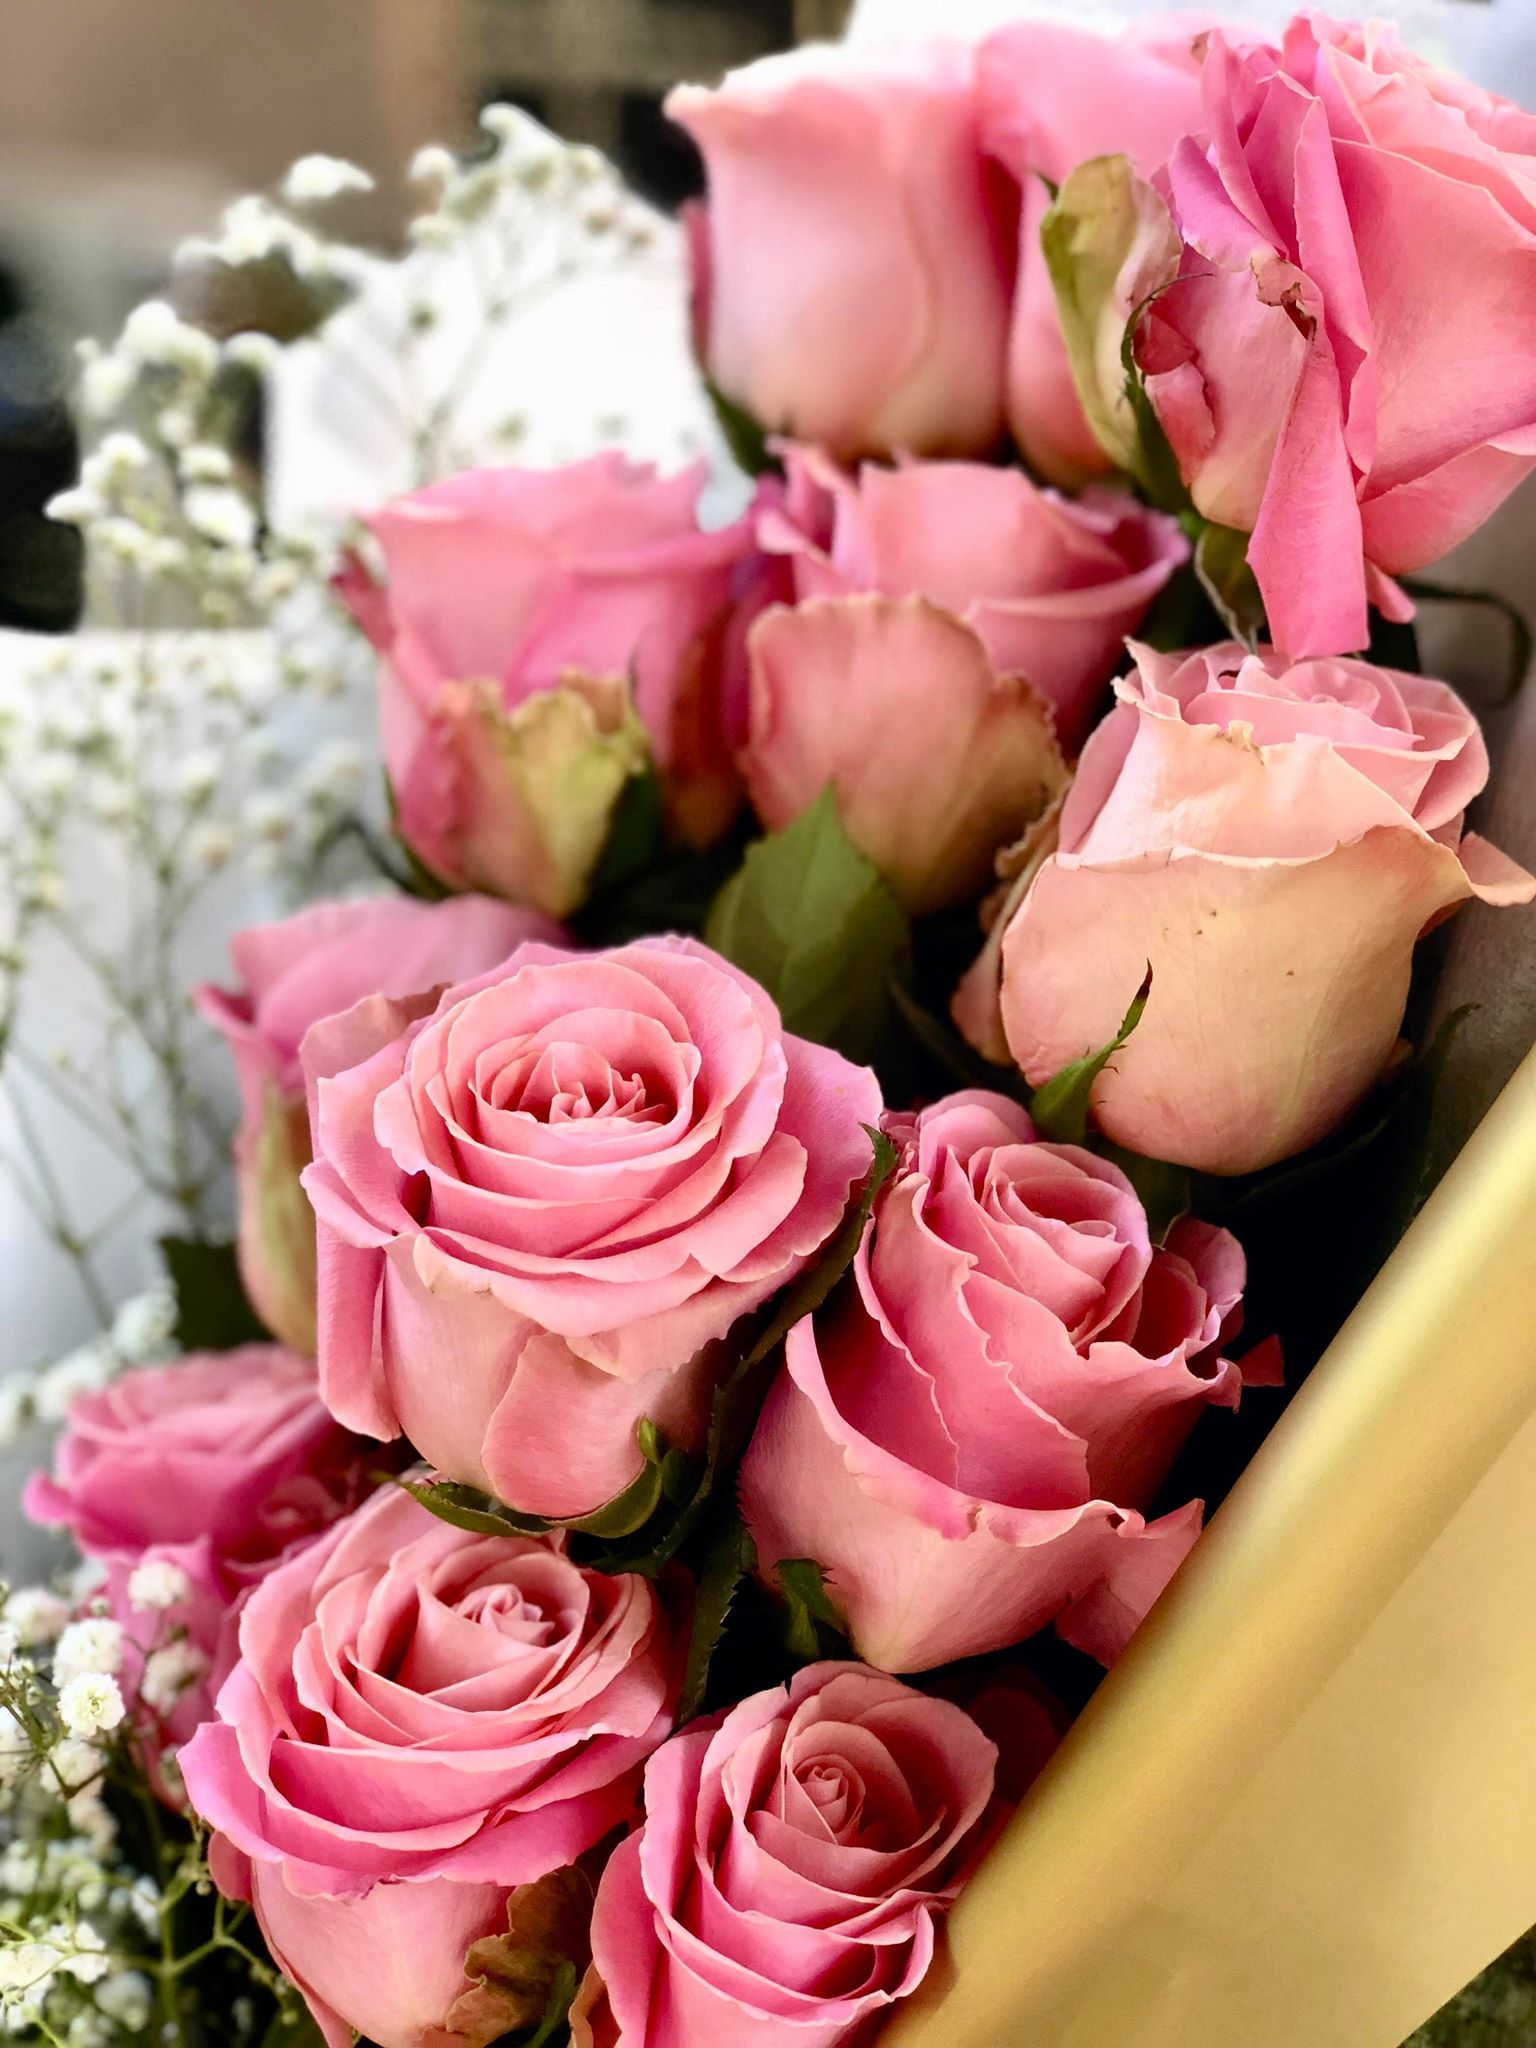 Mothers Day Flowers Mothers Day Presents Mother S Day Gift Ideas Mothers Day Ideas Mo Mothers Day Presents Cheap Mothers Day Gifts Mothers Day Gifts Amazon